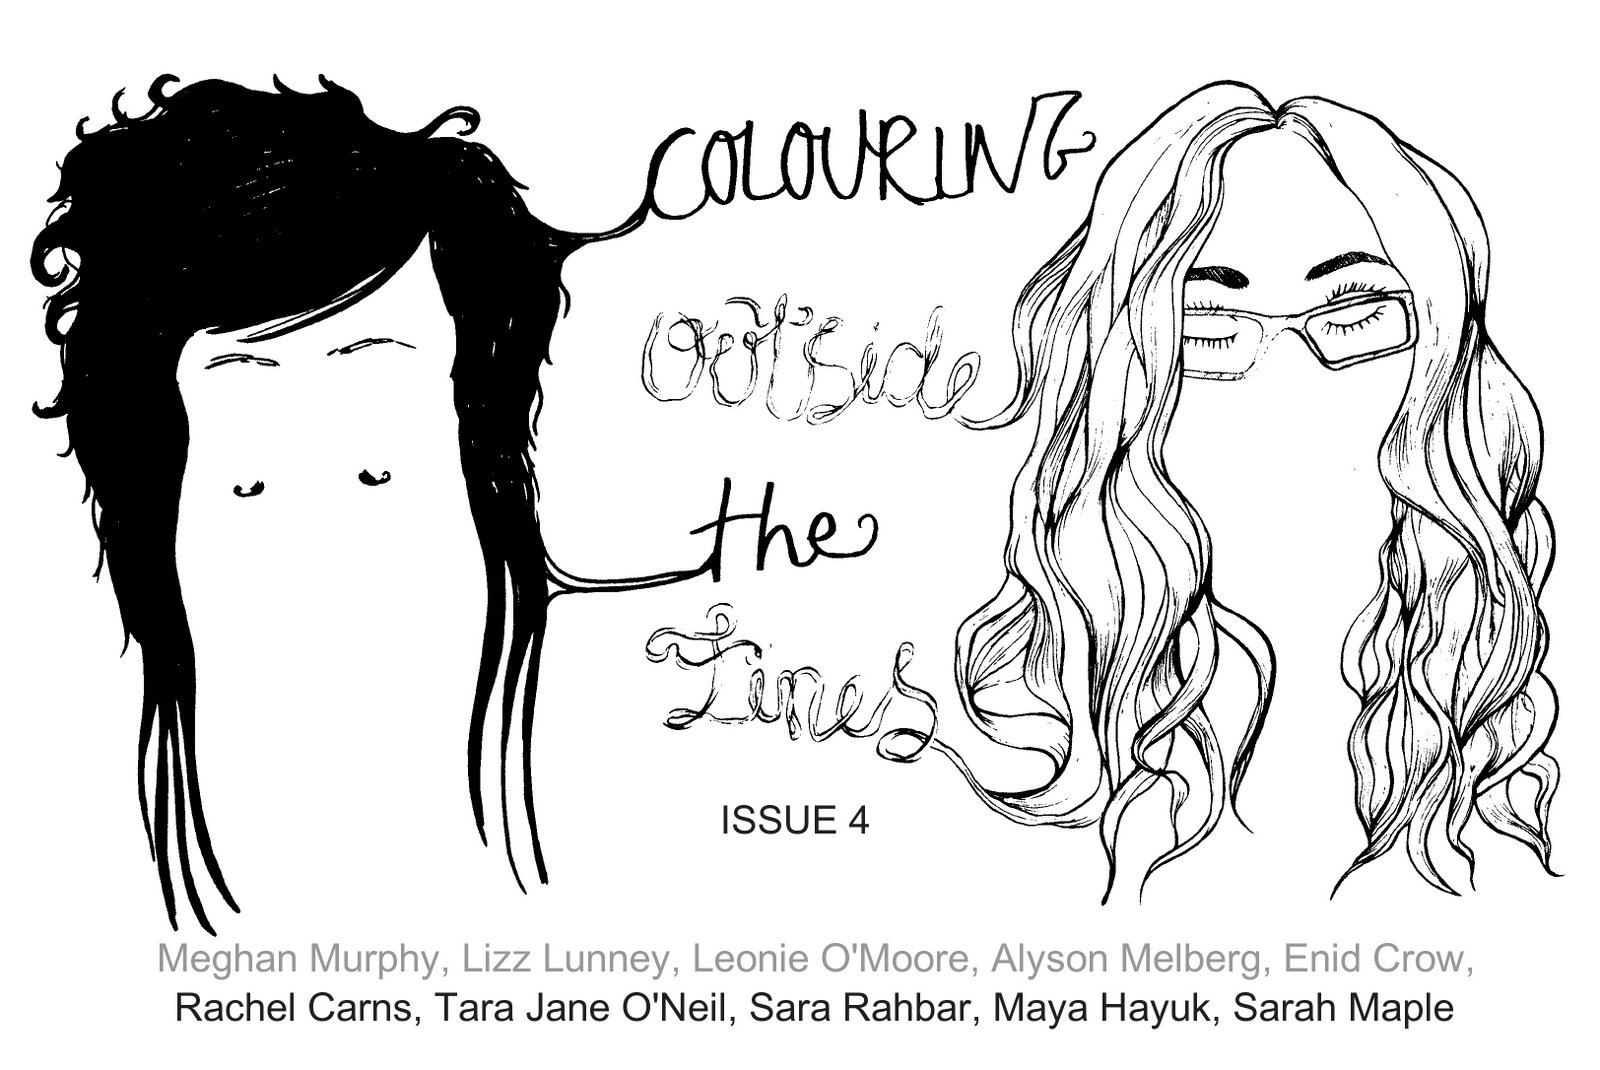 COTL issue 4